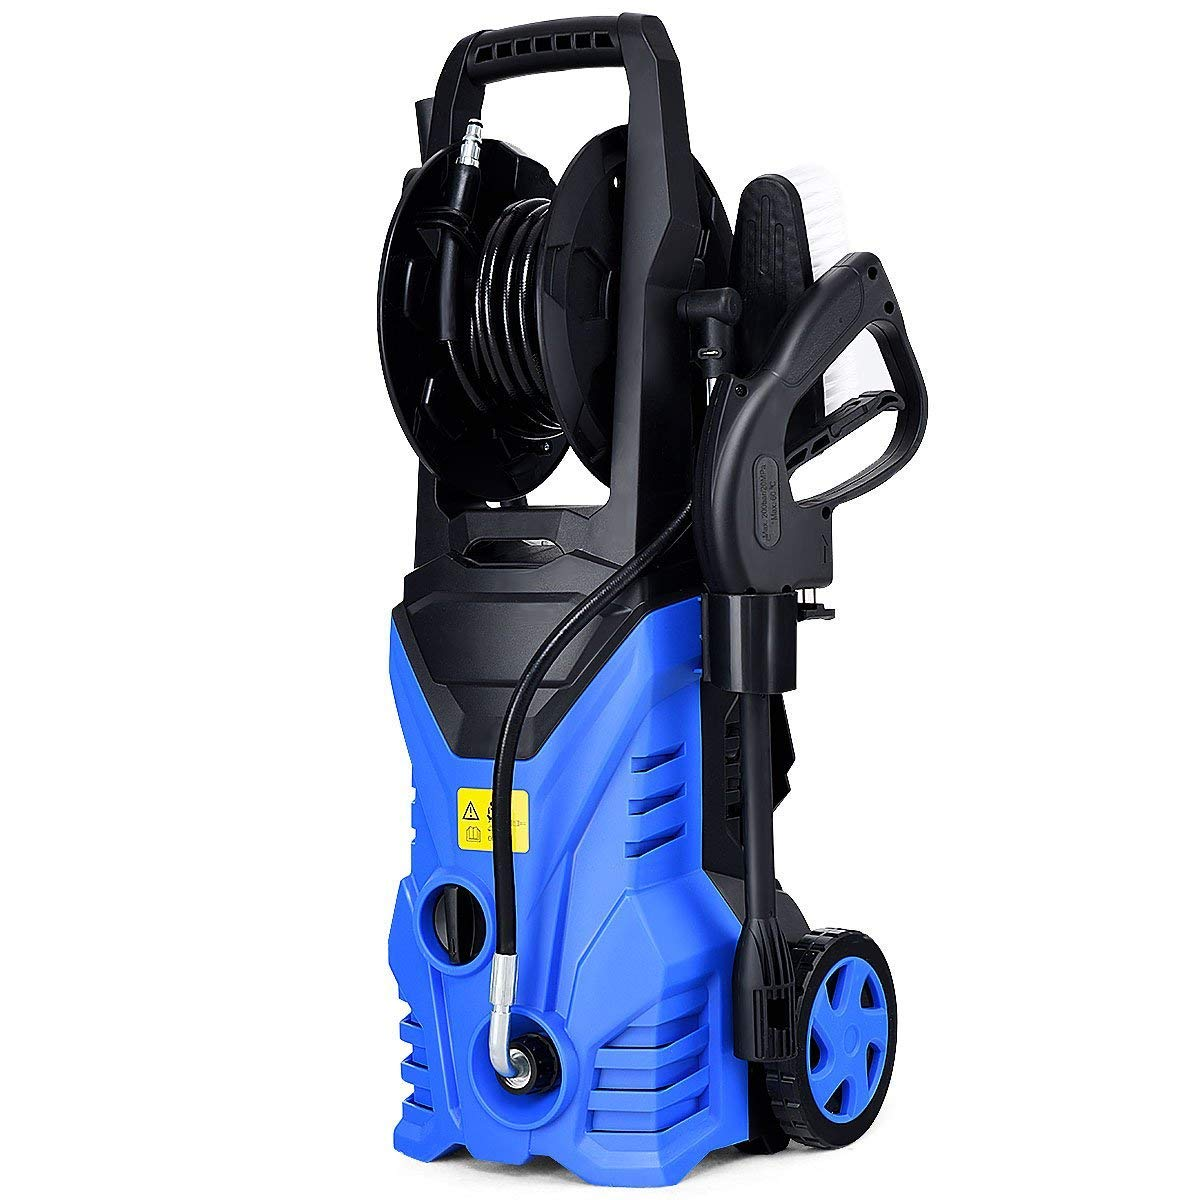 Goplus Electric High Pressure Washer 2030PSI 1.6GPM Power Pressure Washer Machine w/High Pressure Hose and Wash Brush (Blue)